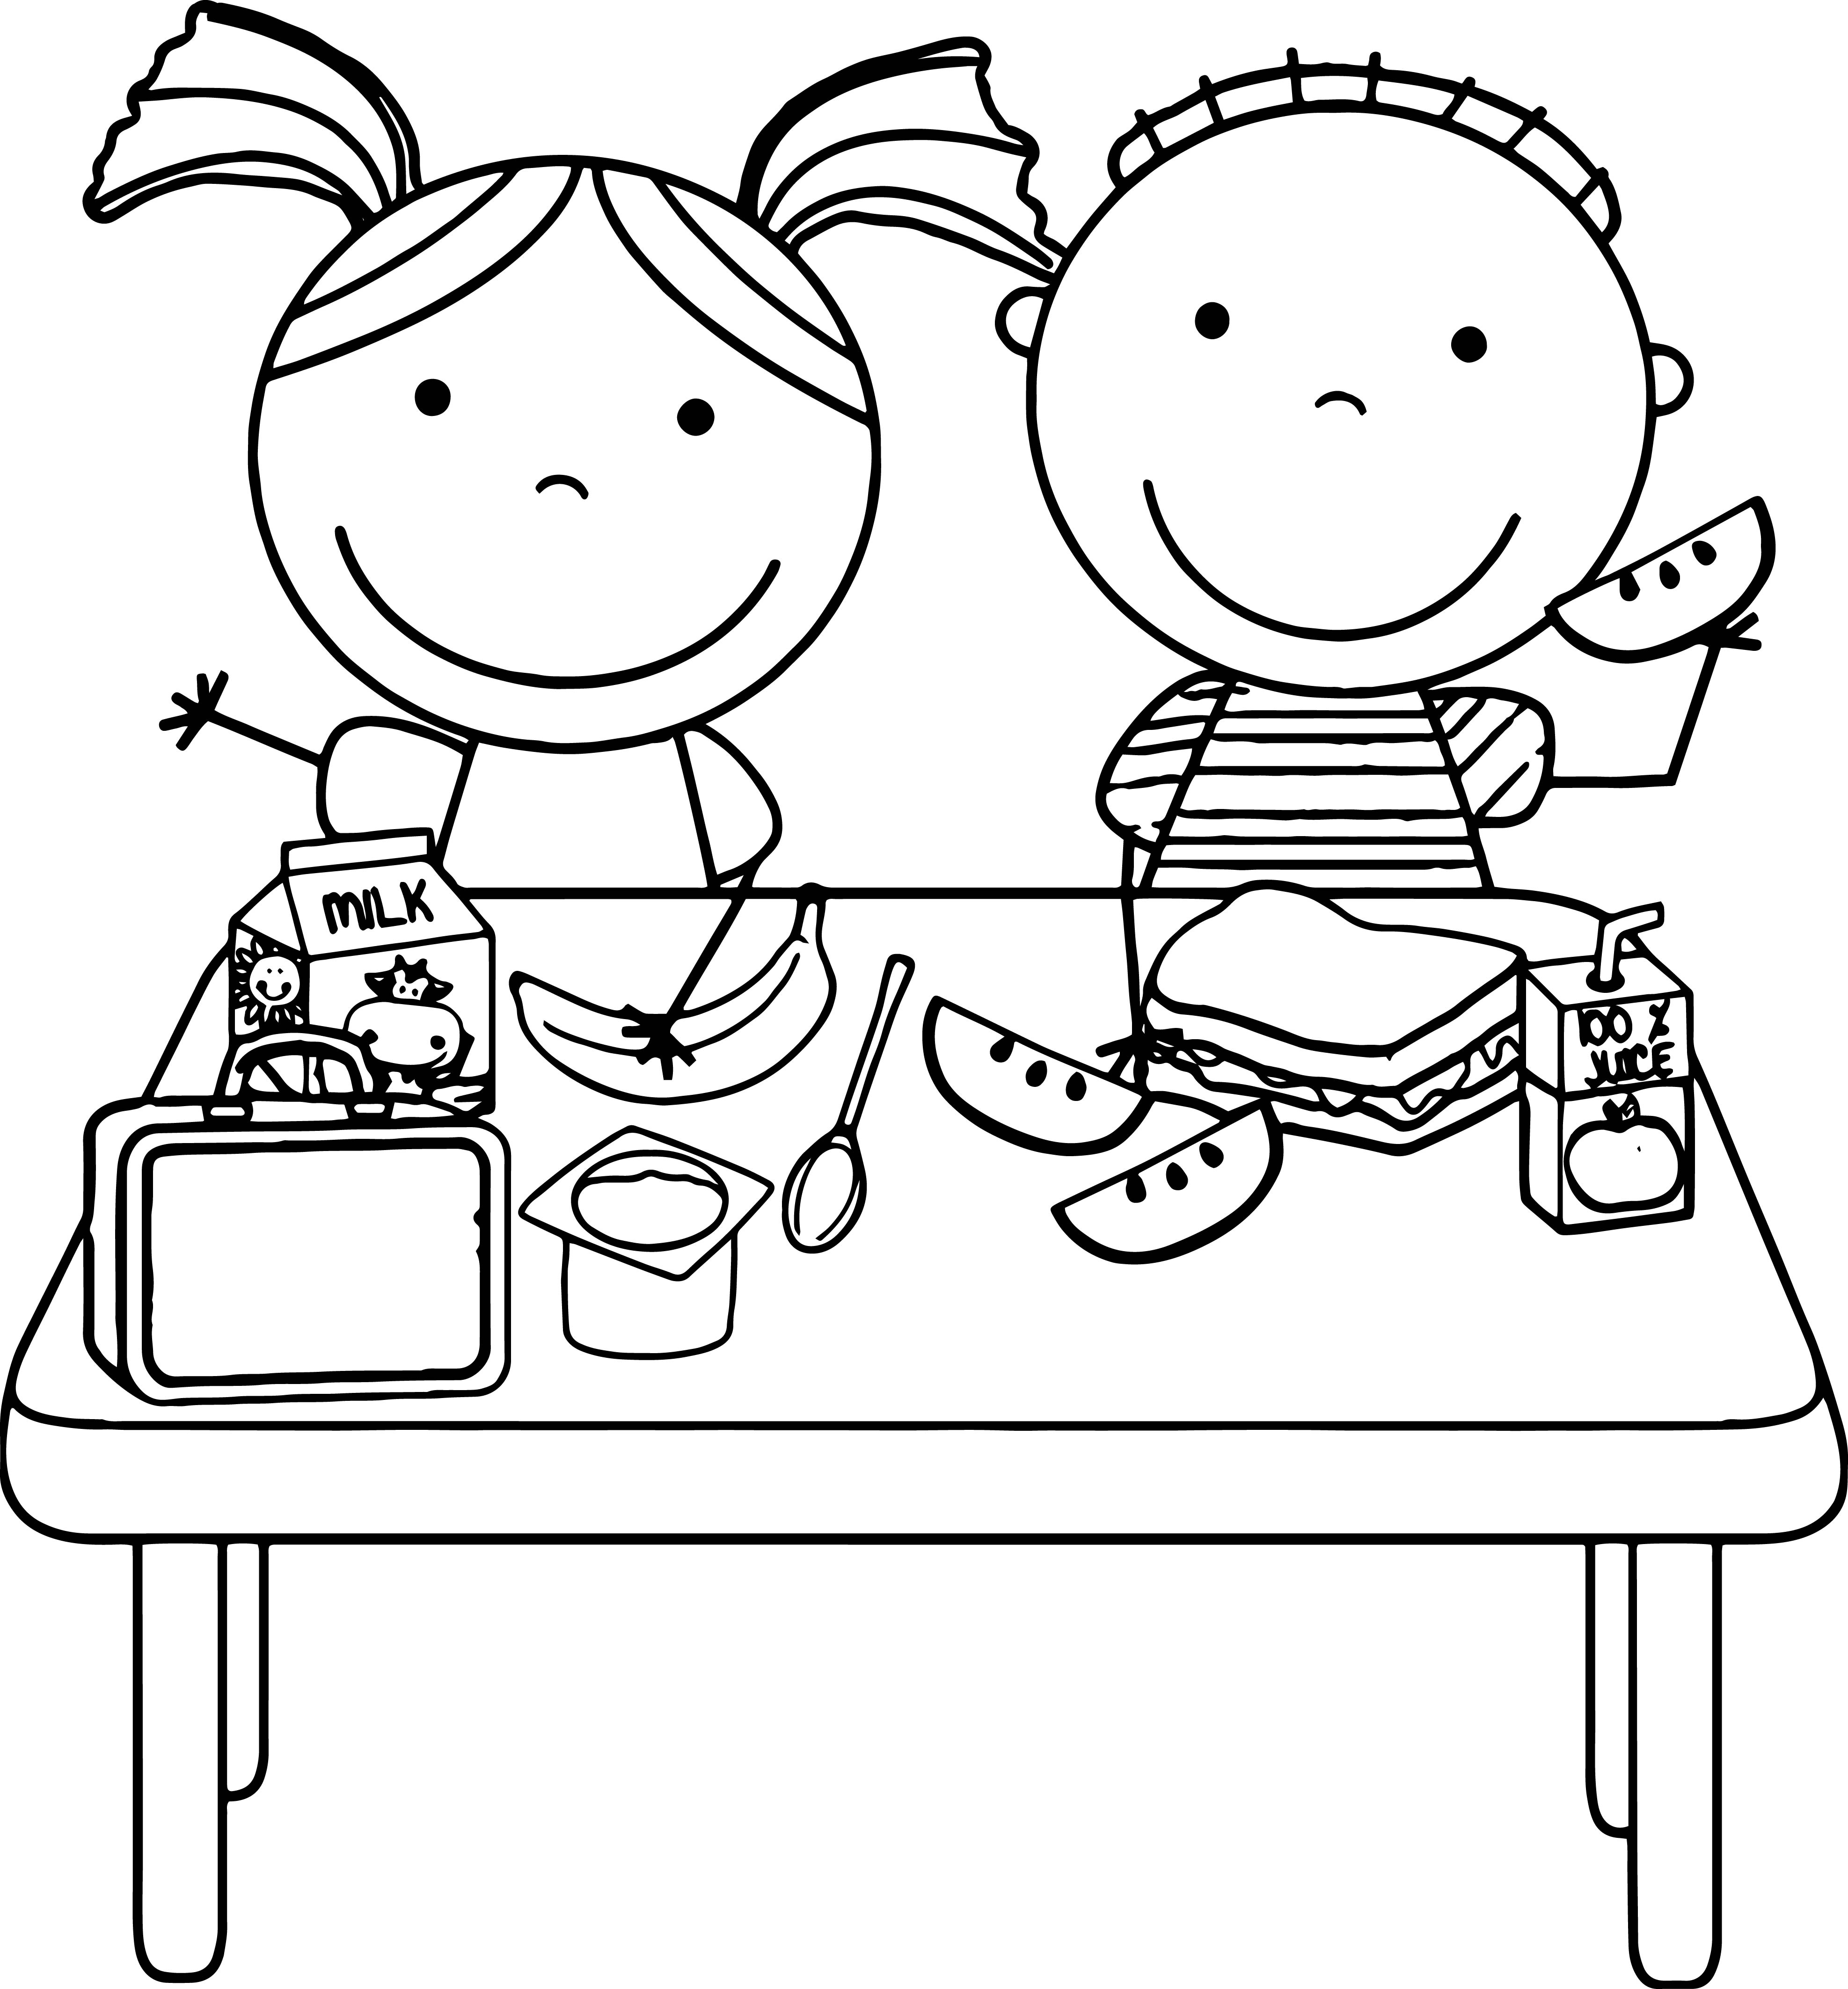 Kids Eating Lunch Kids Coloring Page.